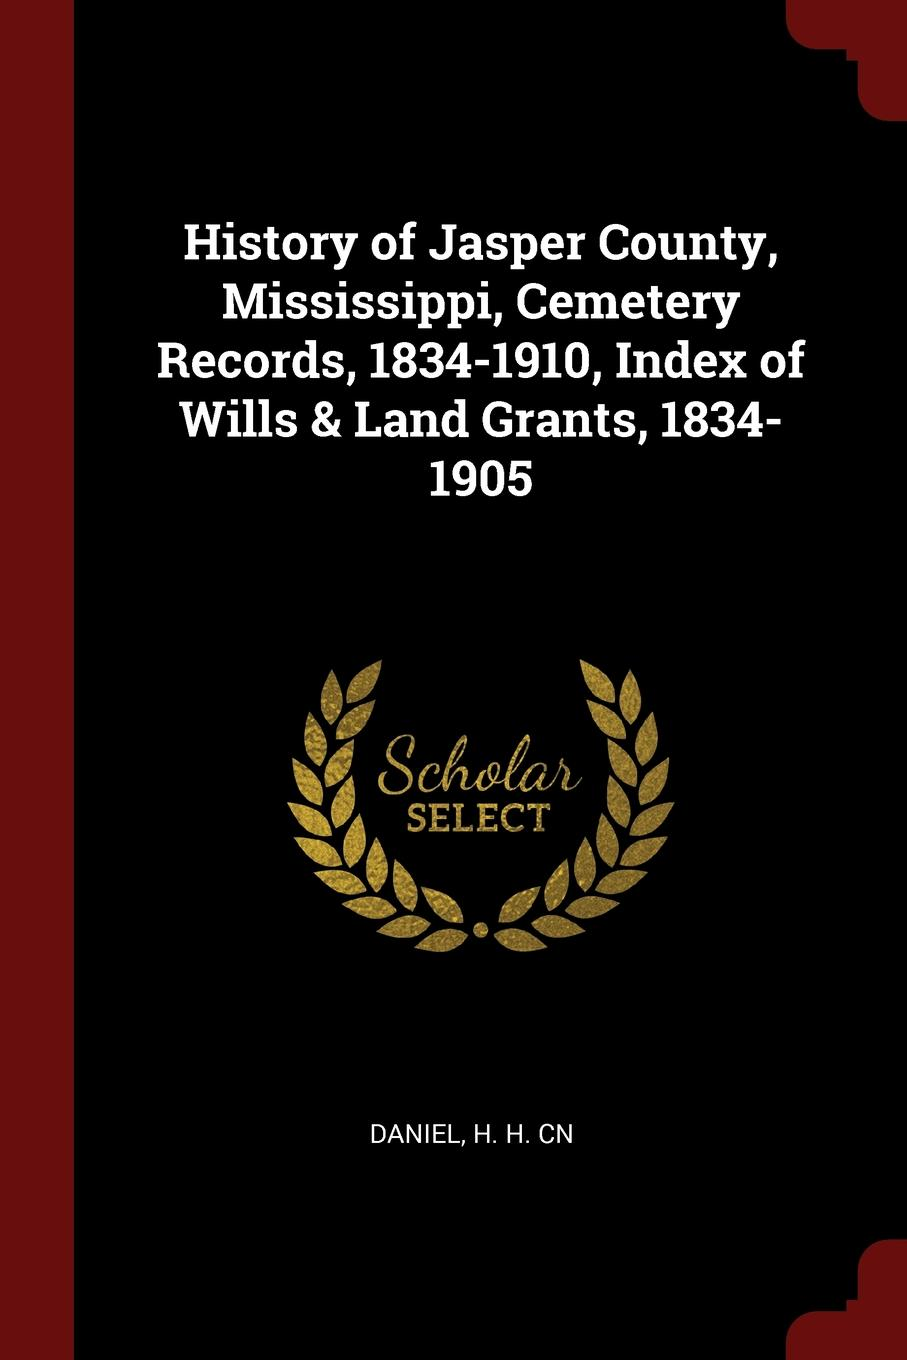 History of Jasper County, Mississippi, Cemetery Records, 1834-1910, Index of Wills . Land Grants, 1834-1905